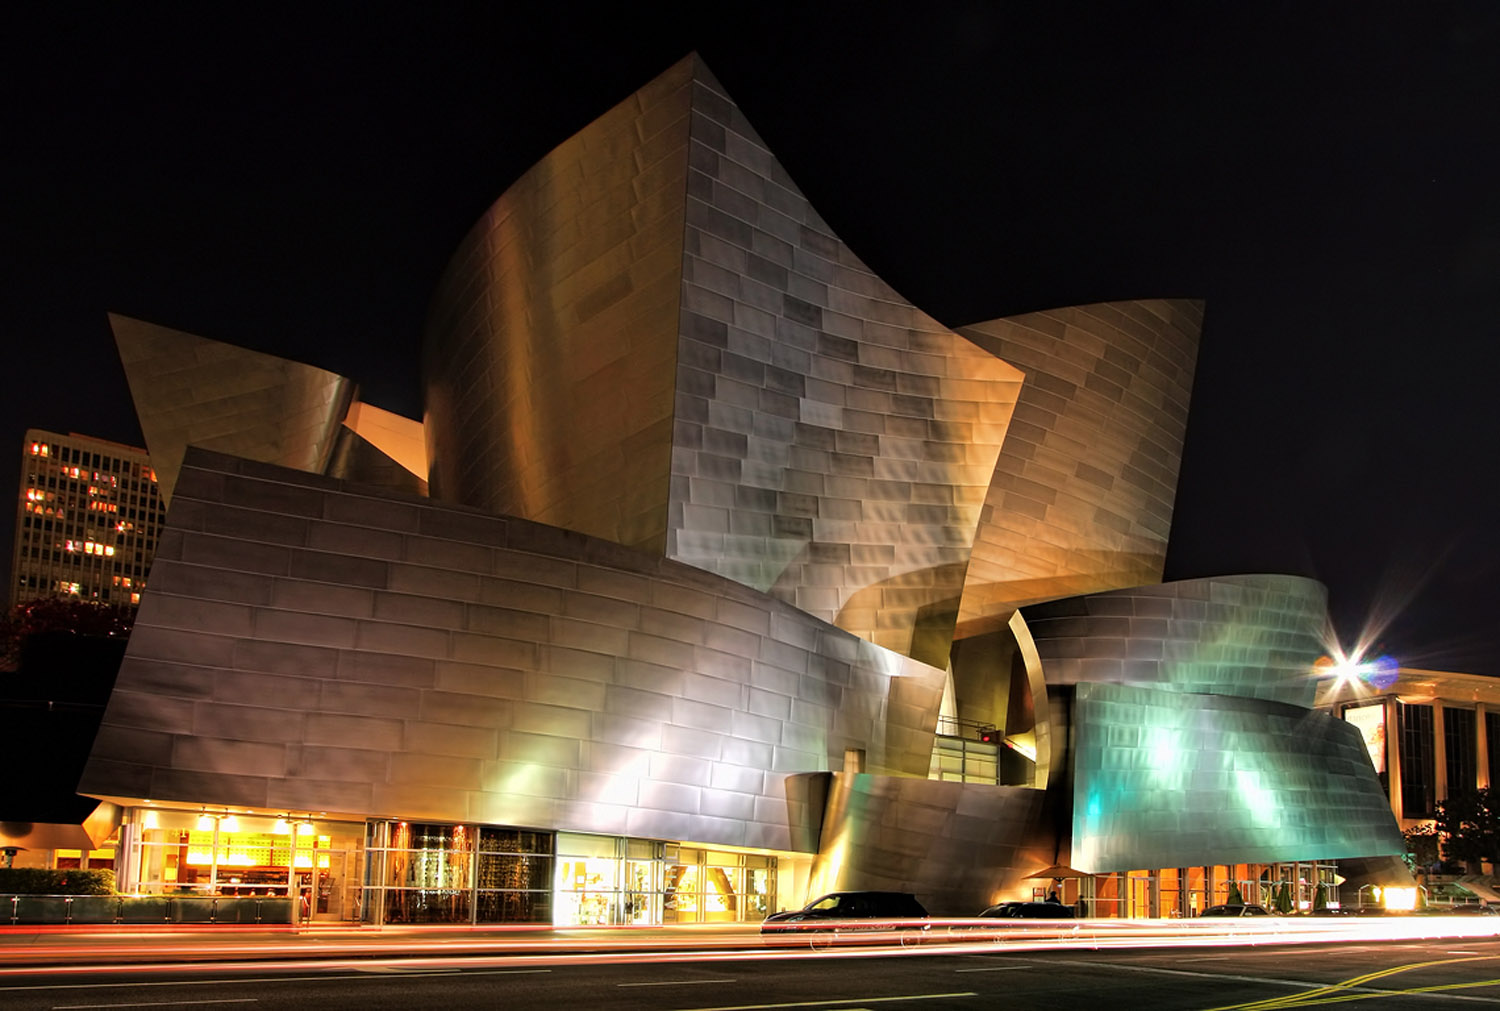 Walt Disney Concert Hall design by Frank Gehry